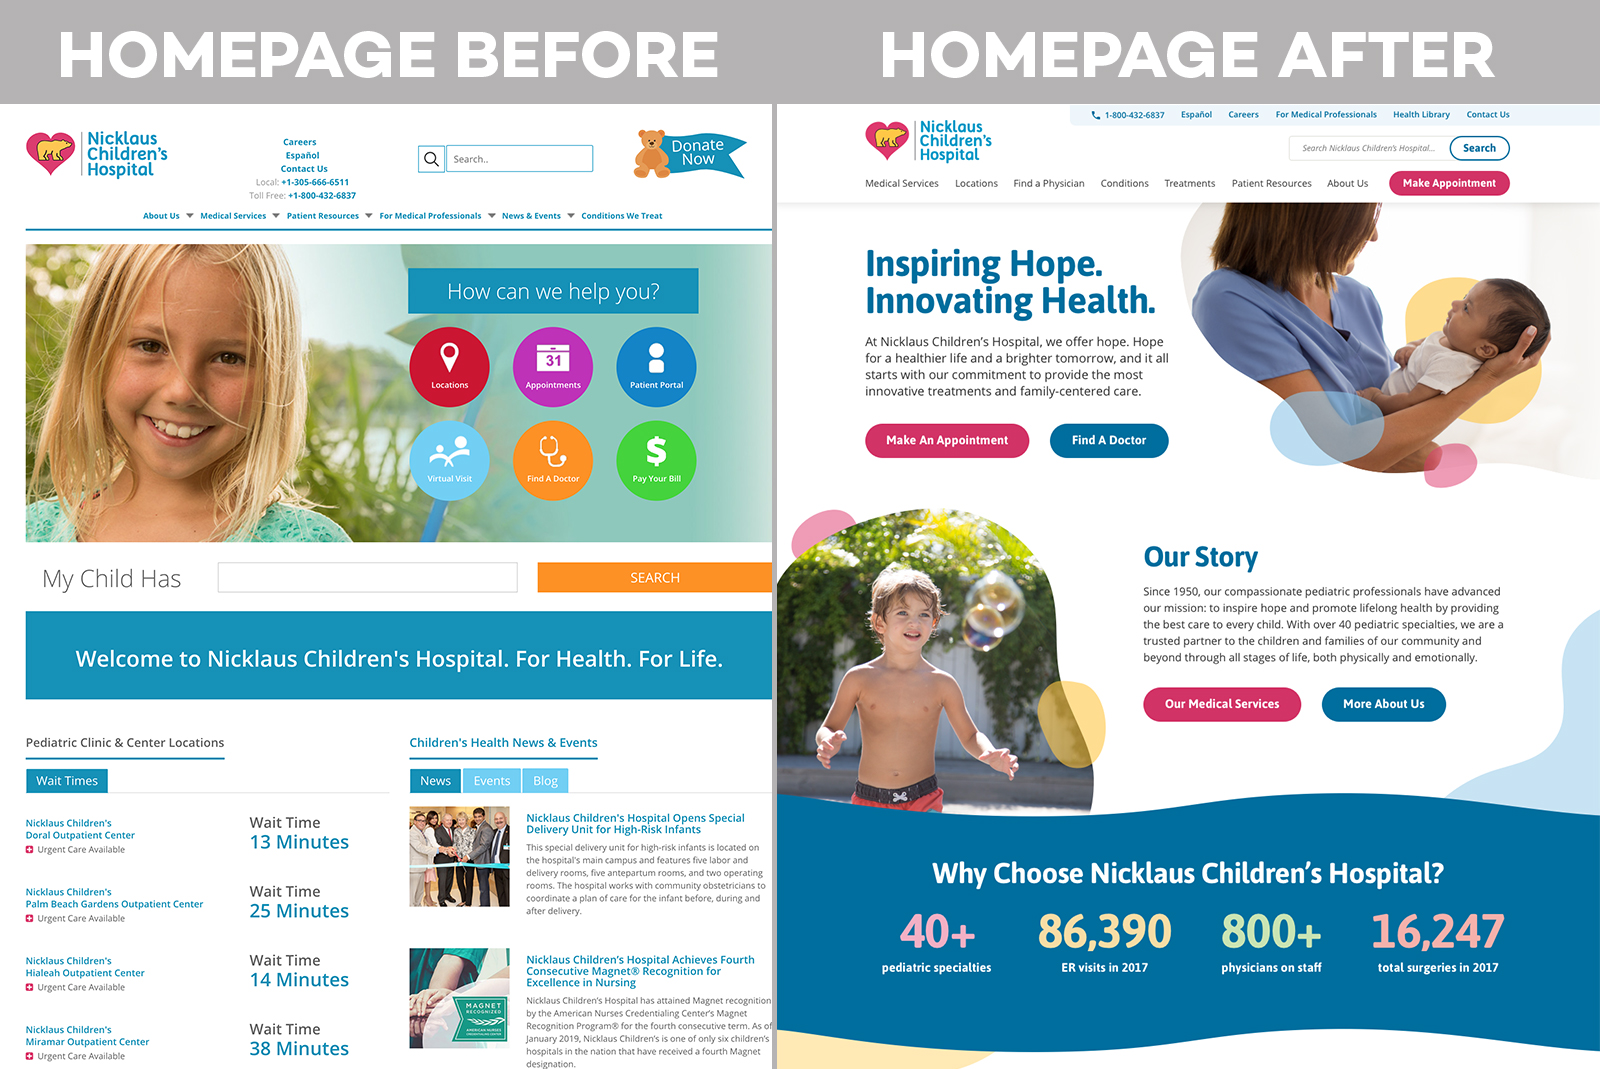 Nicklaus Children's Health System Homepage Before vs. After